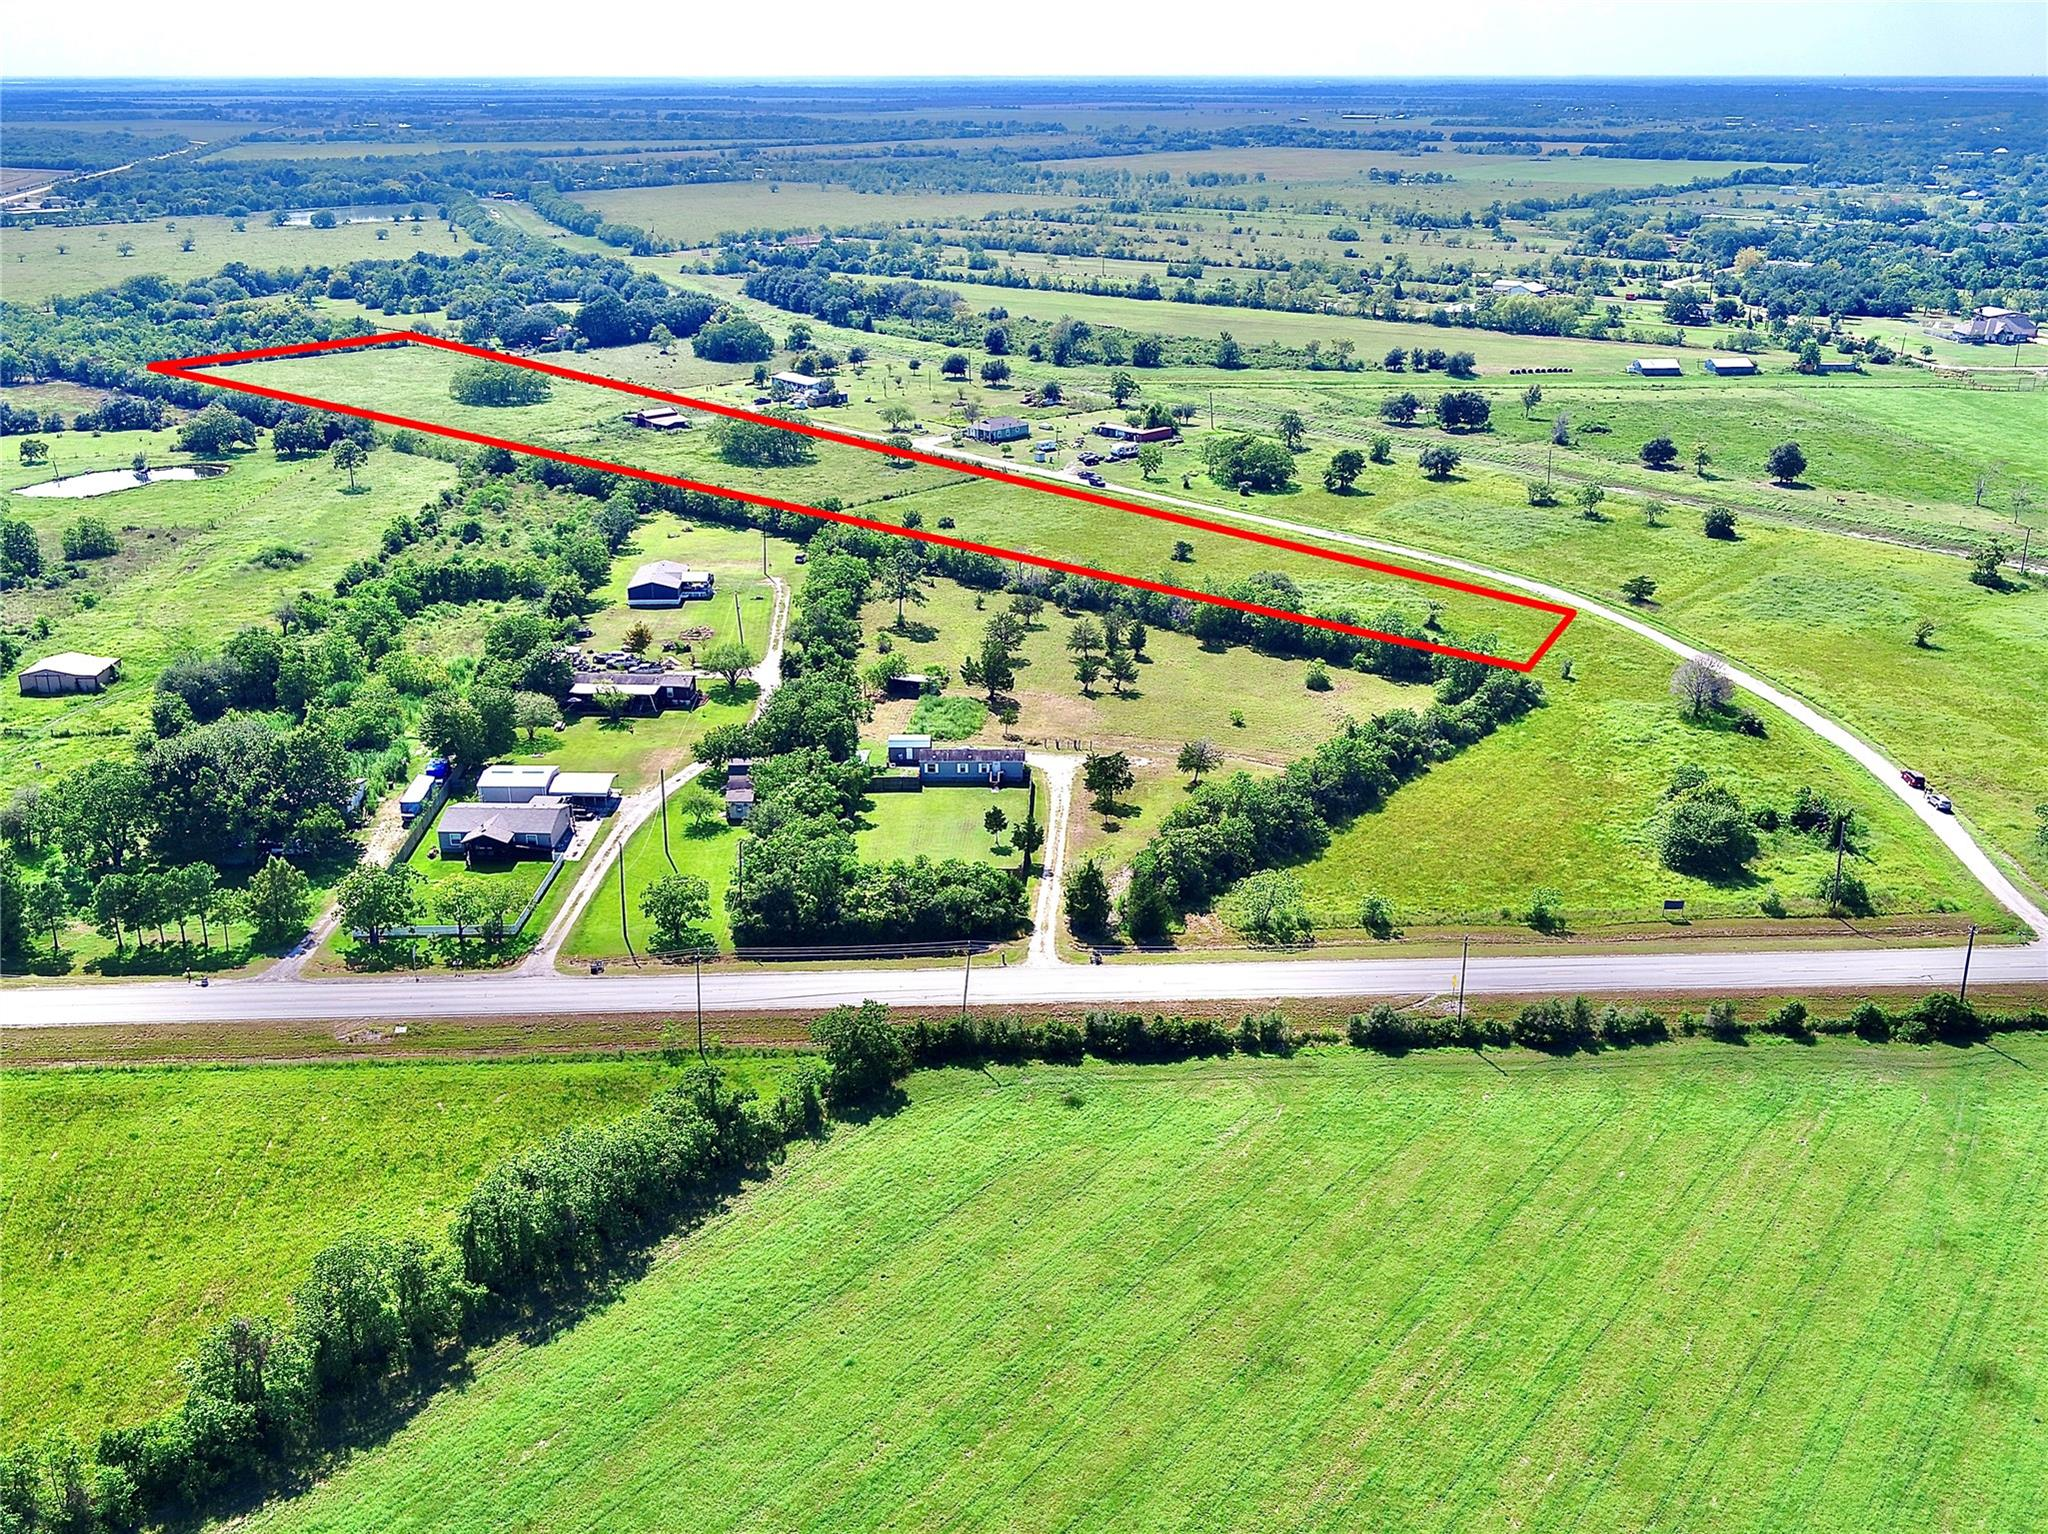 0000 FM 646 RD S Property Photo - Santa Fe, TX real estate listing